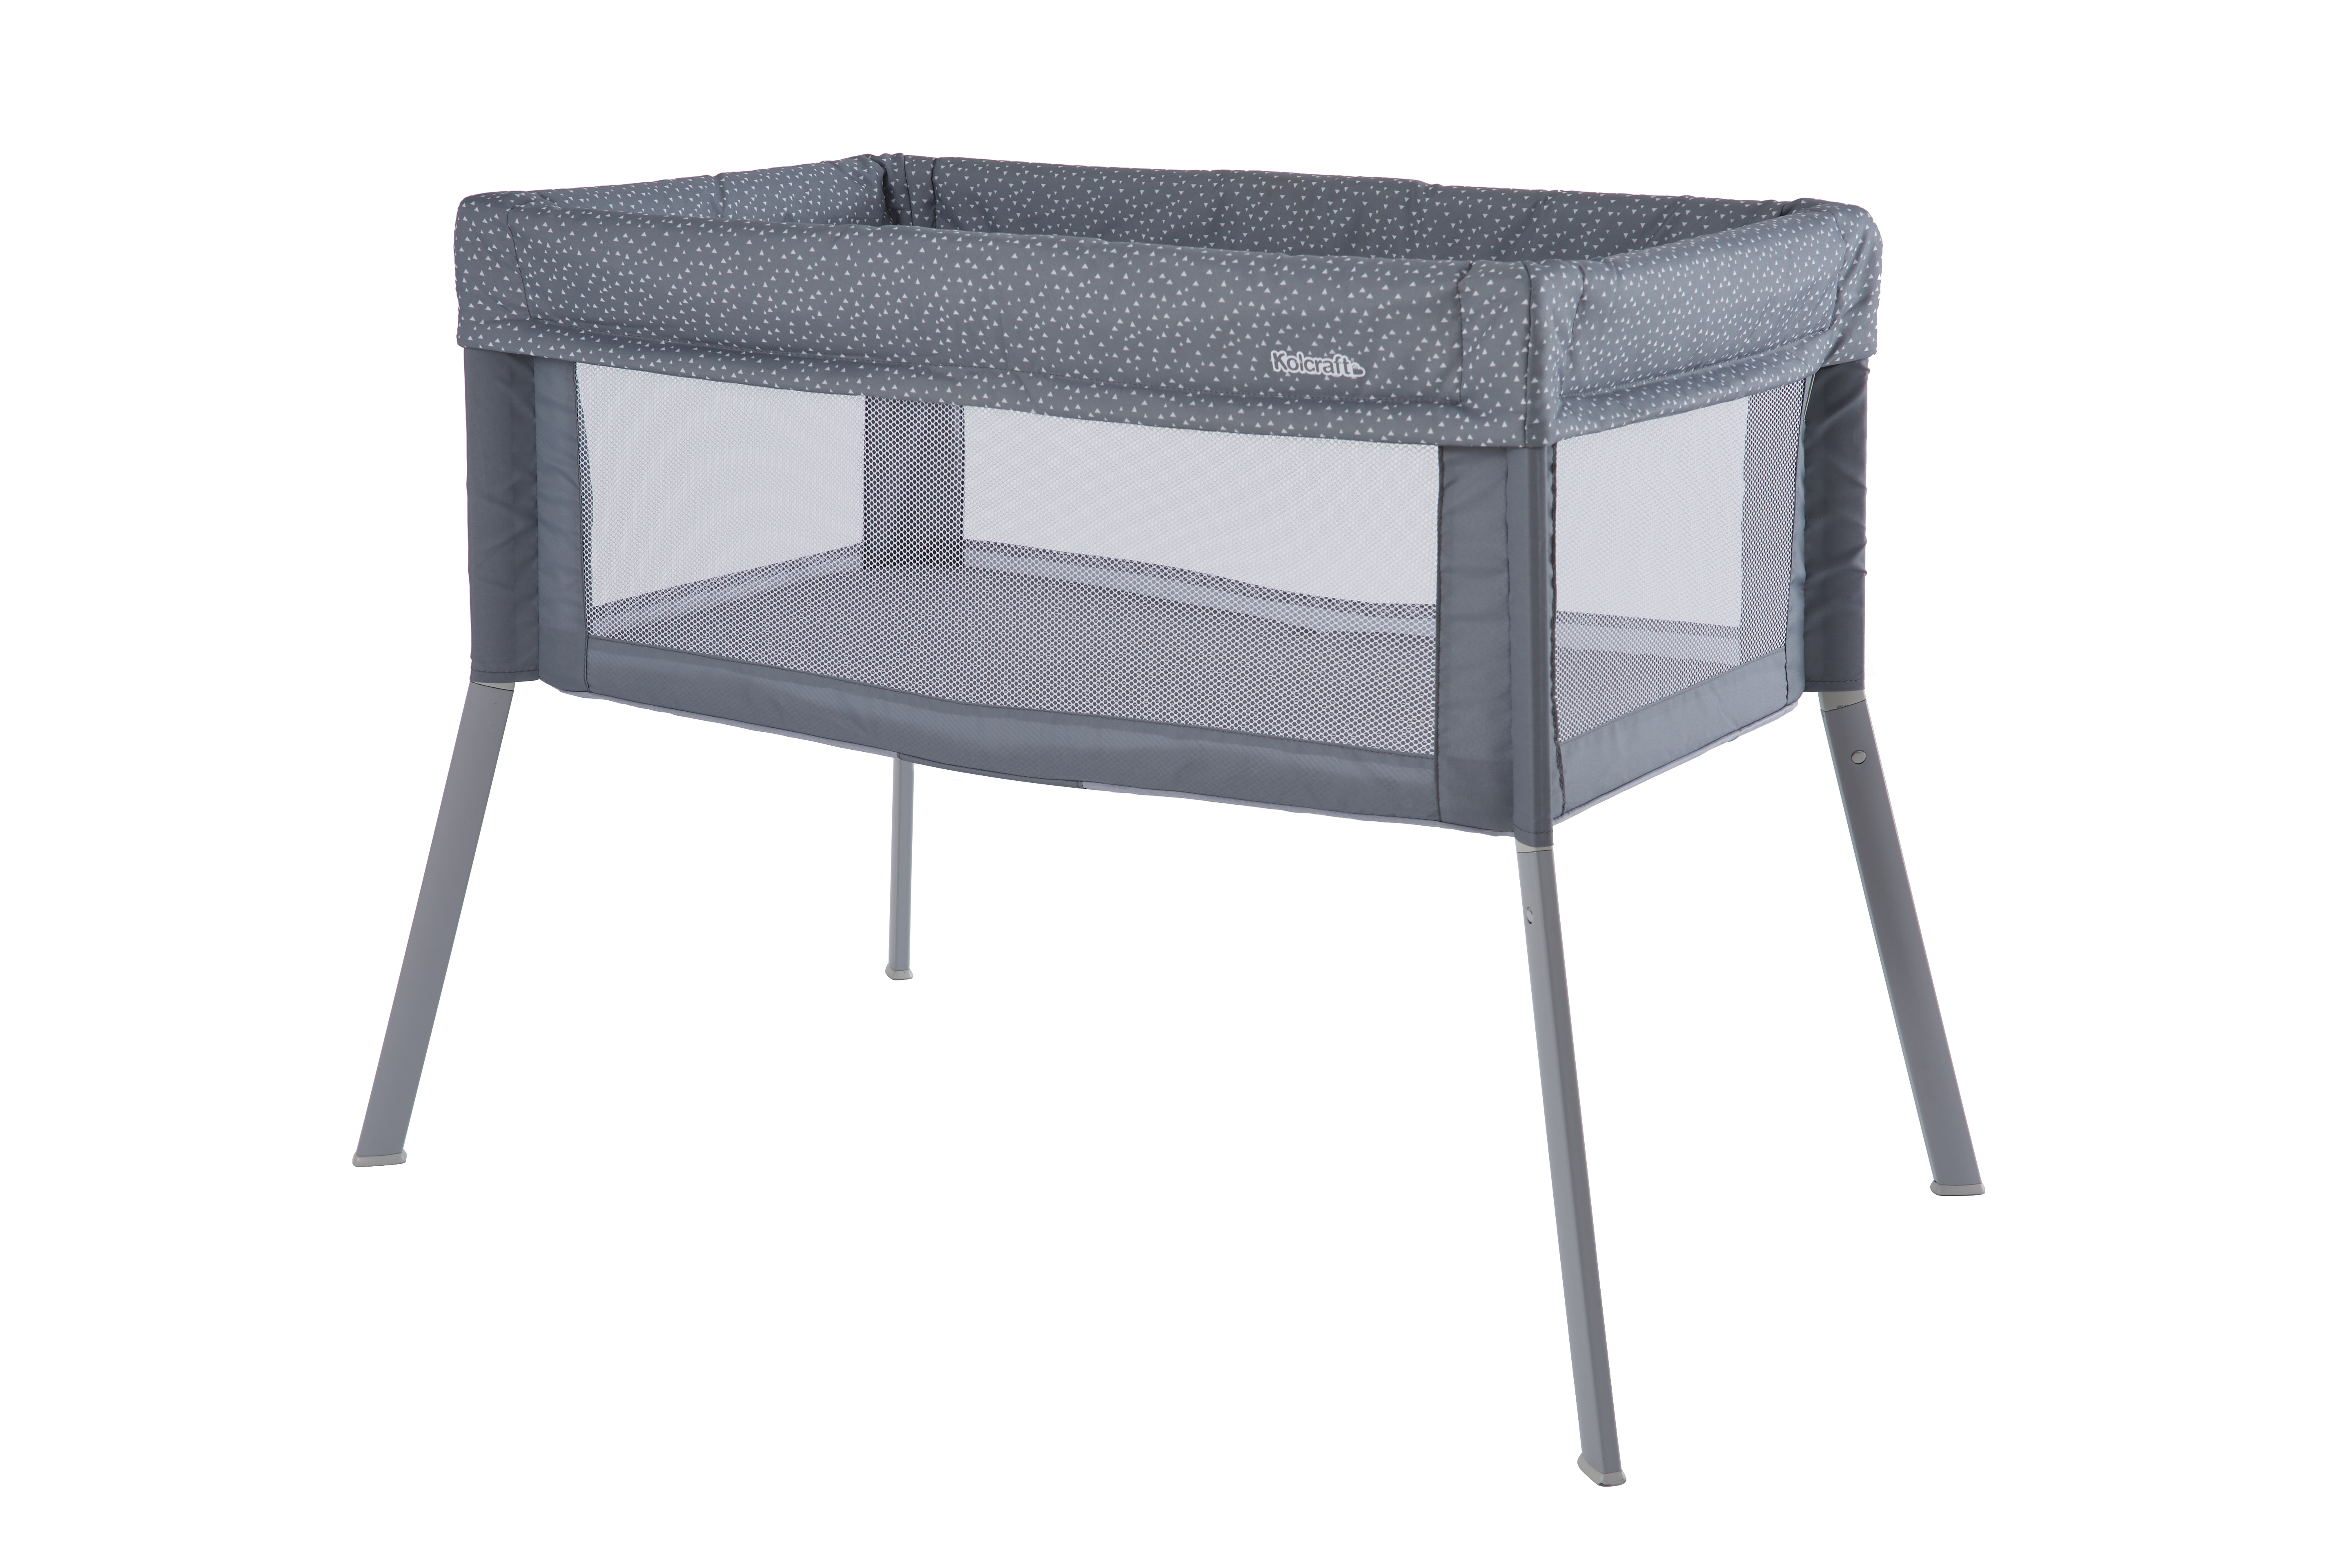 Kolcraft® Healthy Lite™ Portable Bassinet with Antimicrobial Sheet Protection